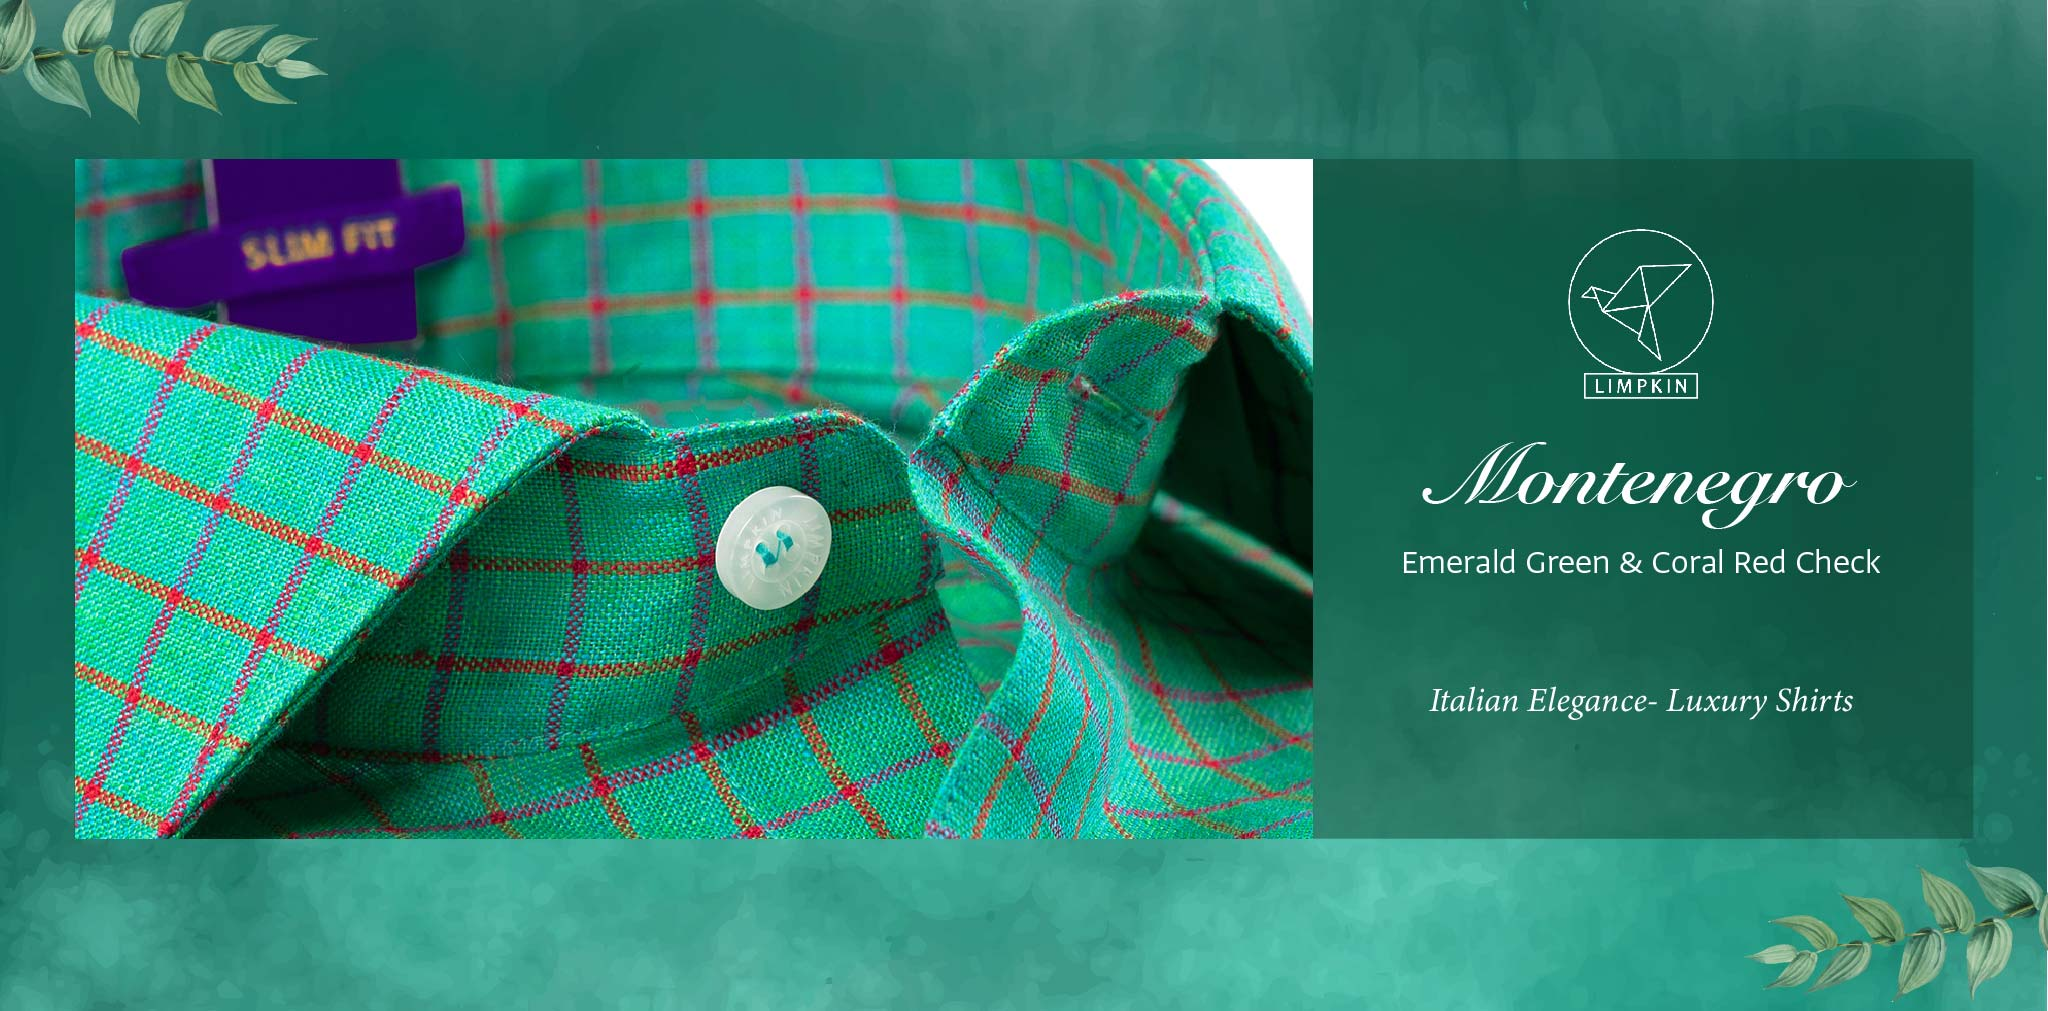 Montenegro- Emerald Green & Coral Red Check- 66's Lea Pure Luxury Linen- Delivery from 26th Jan - Banner